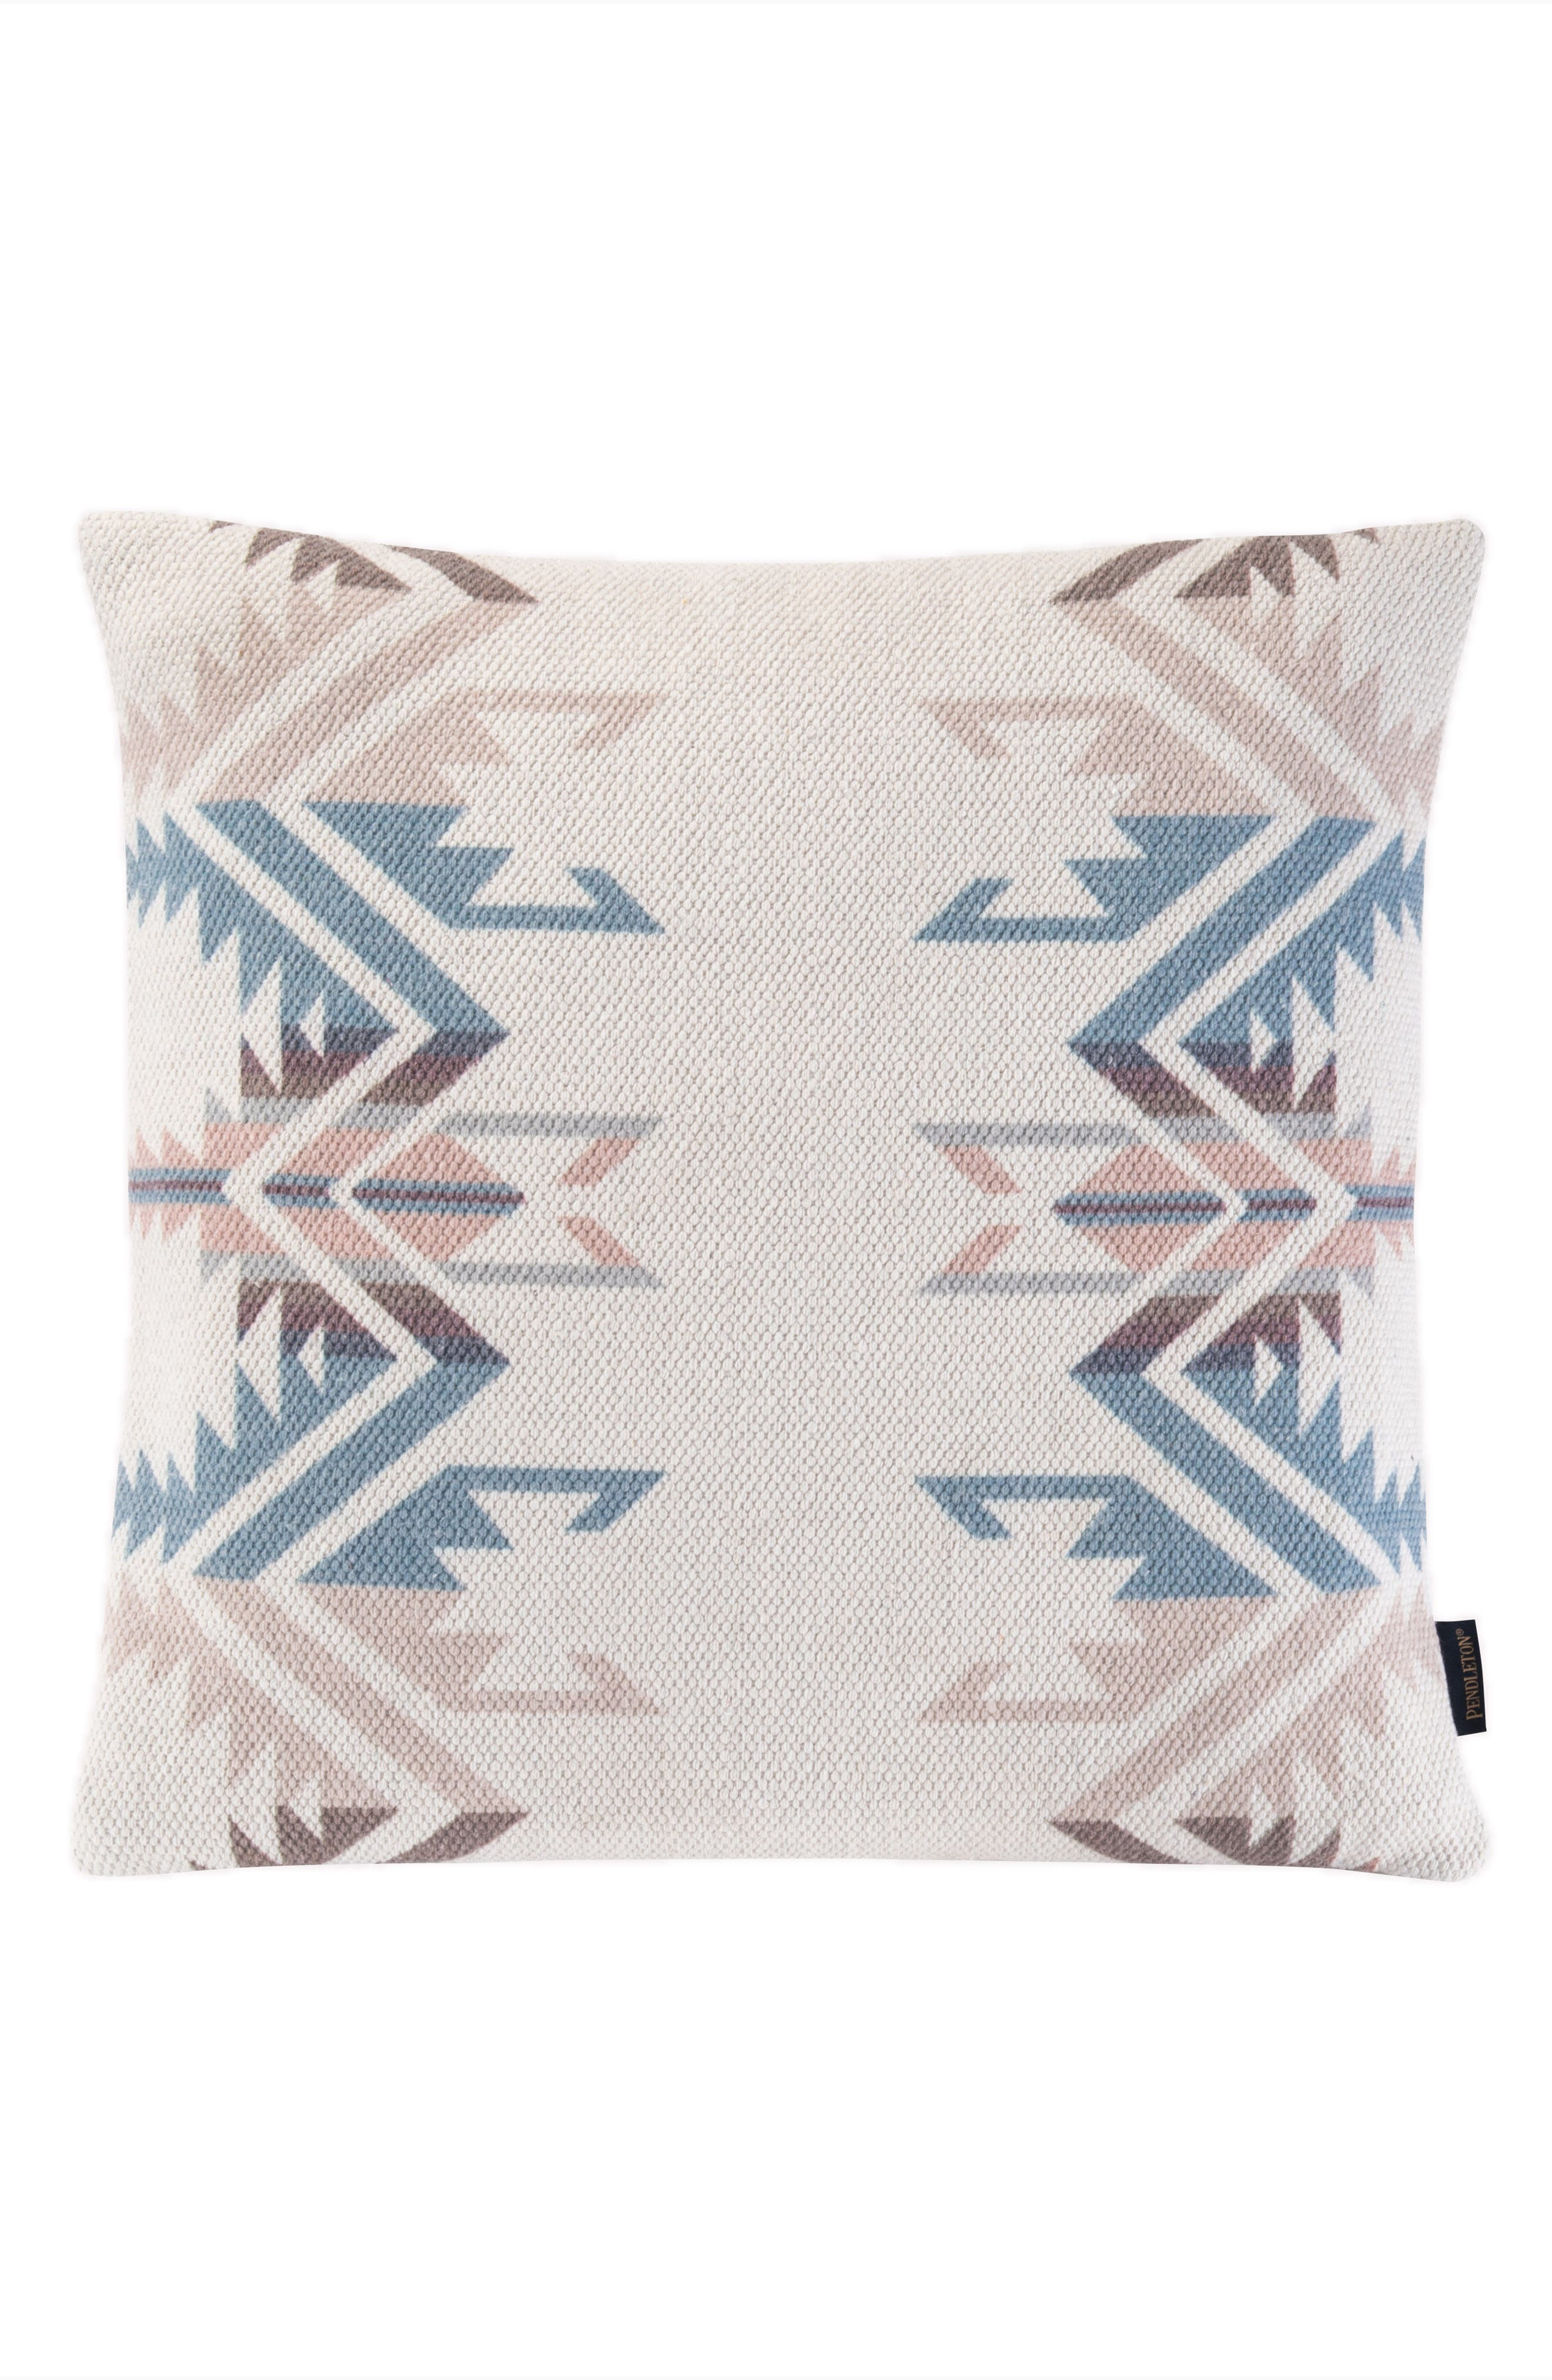 White Sands Accent Pillow,                             Main thumbnail 1, color,                             Ivory